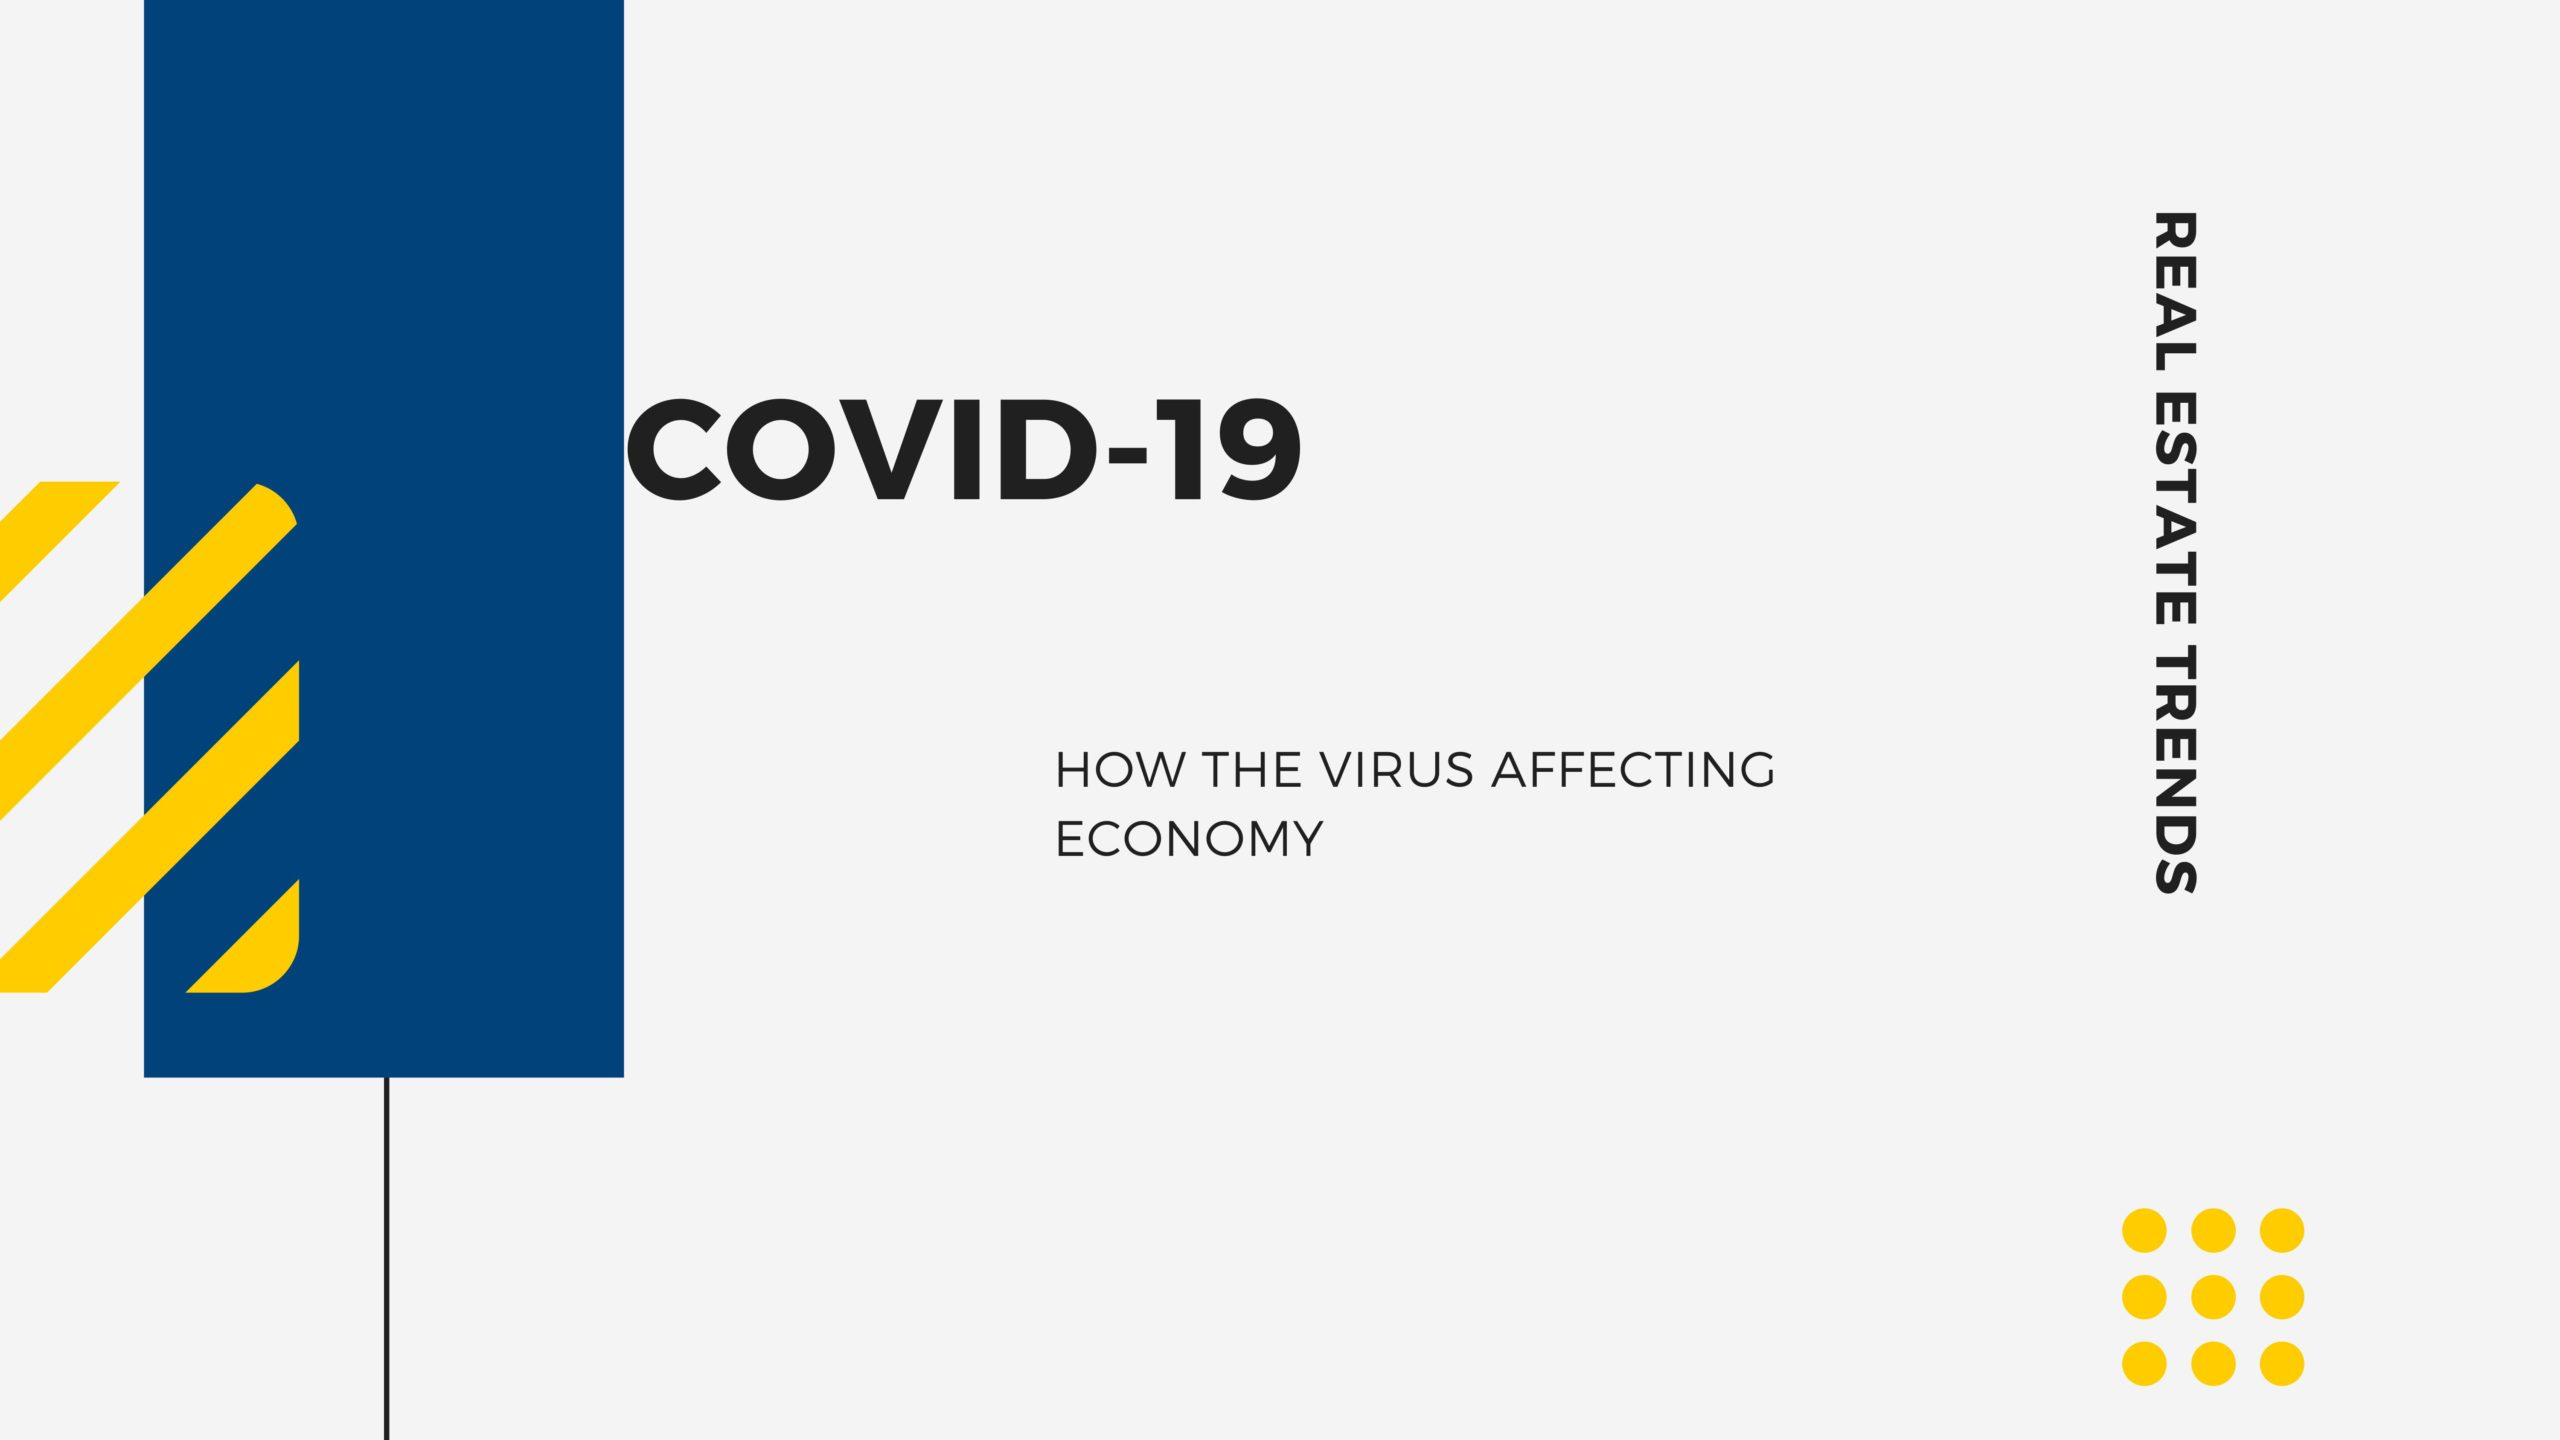 coronavirus impact on real estate